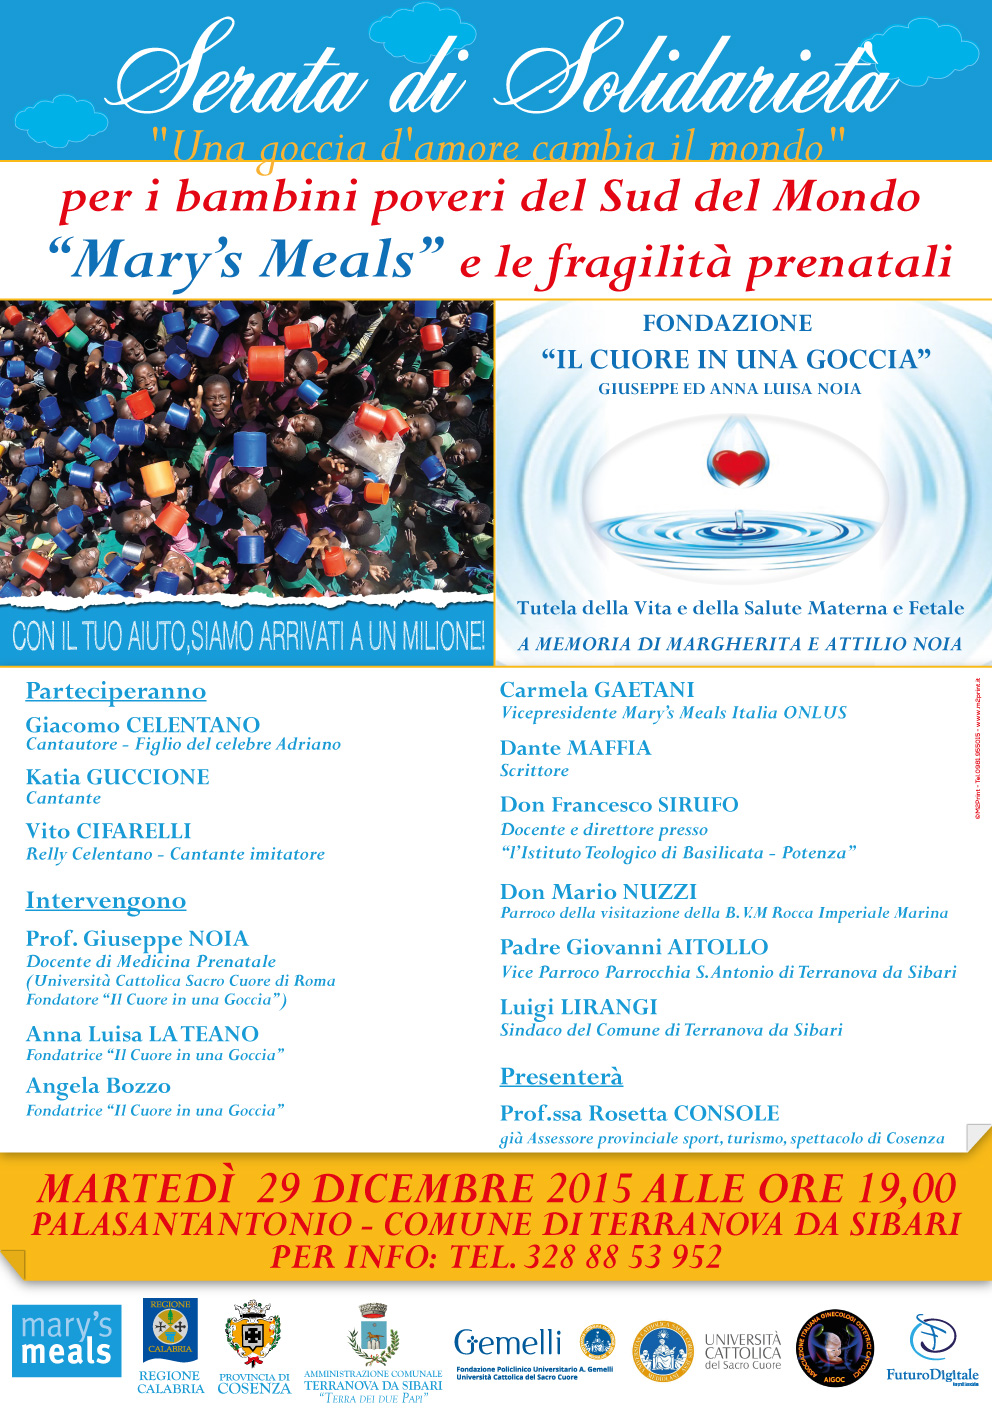 Serata-Solidarietaa---Mary's-Meals